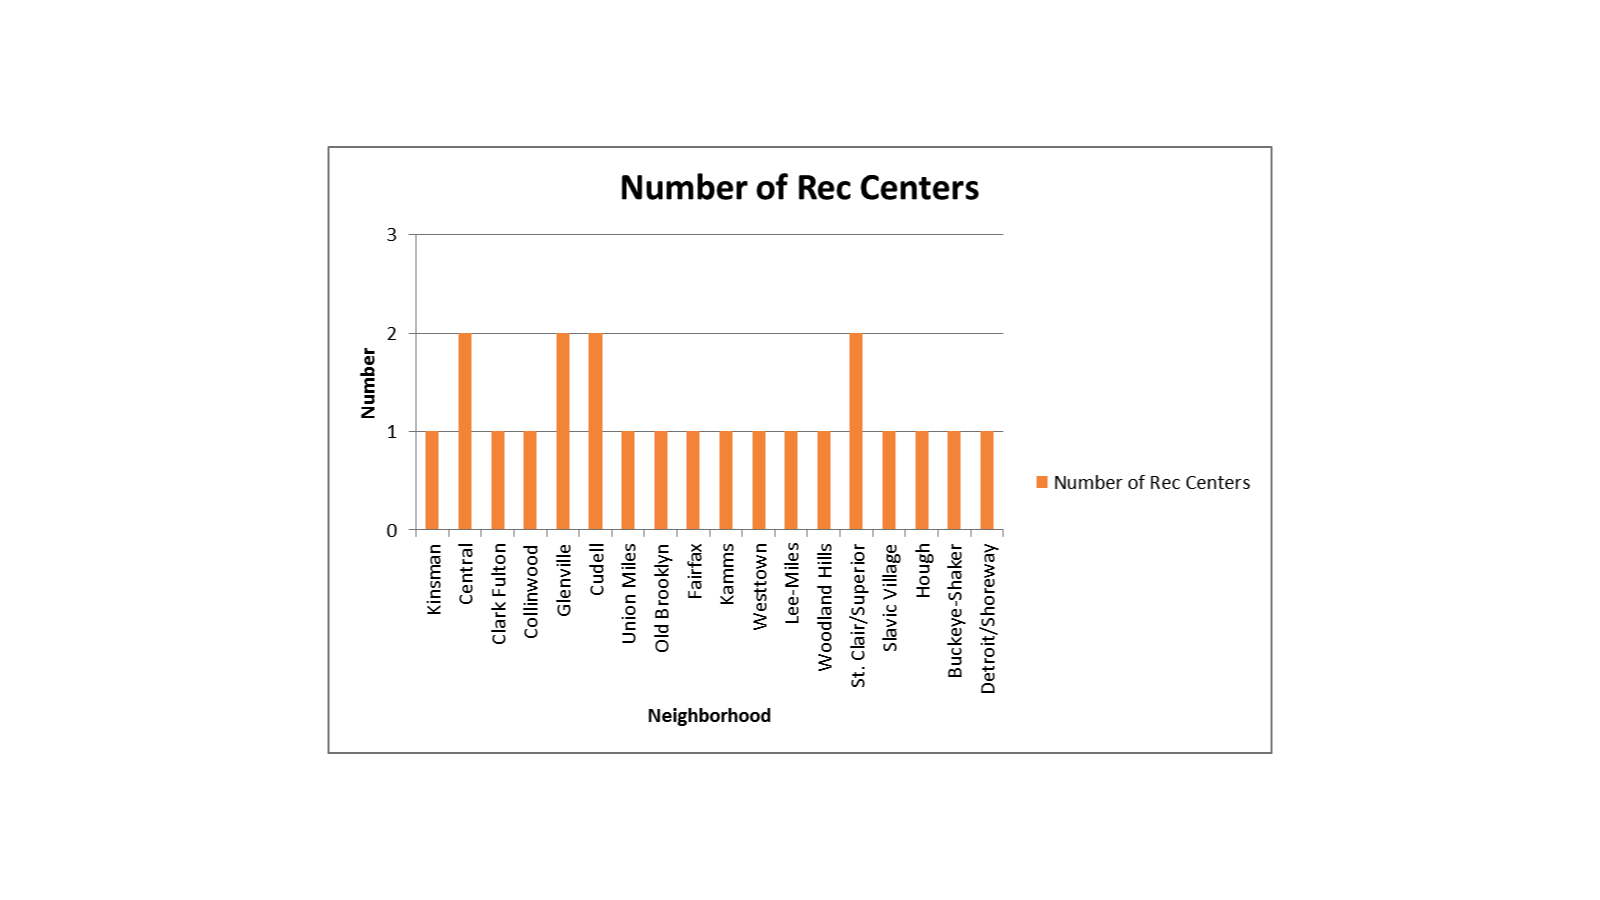 Cleveland Rec Centers by Neighborhood.png